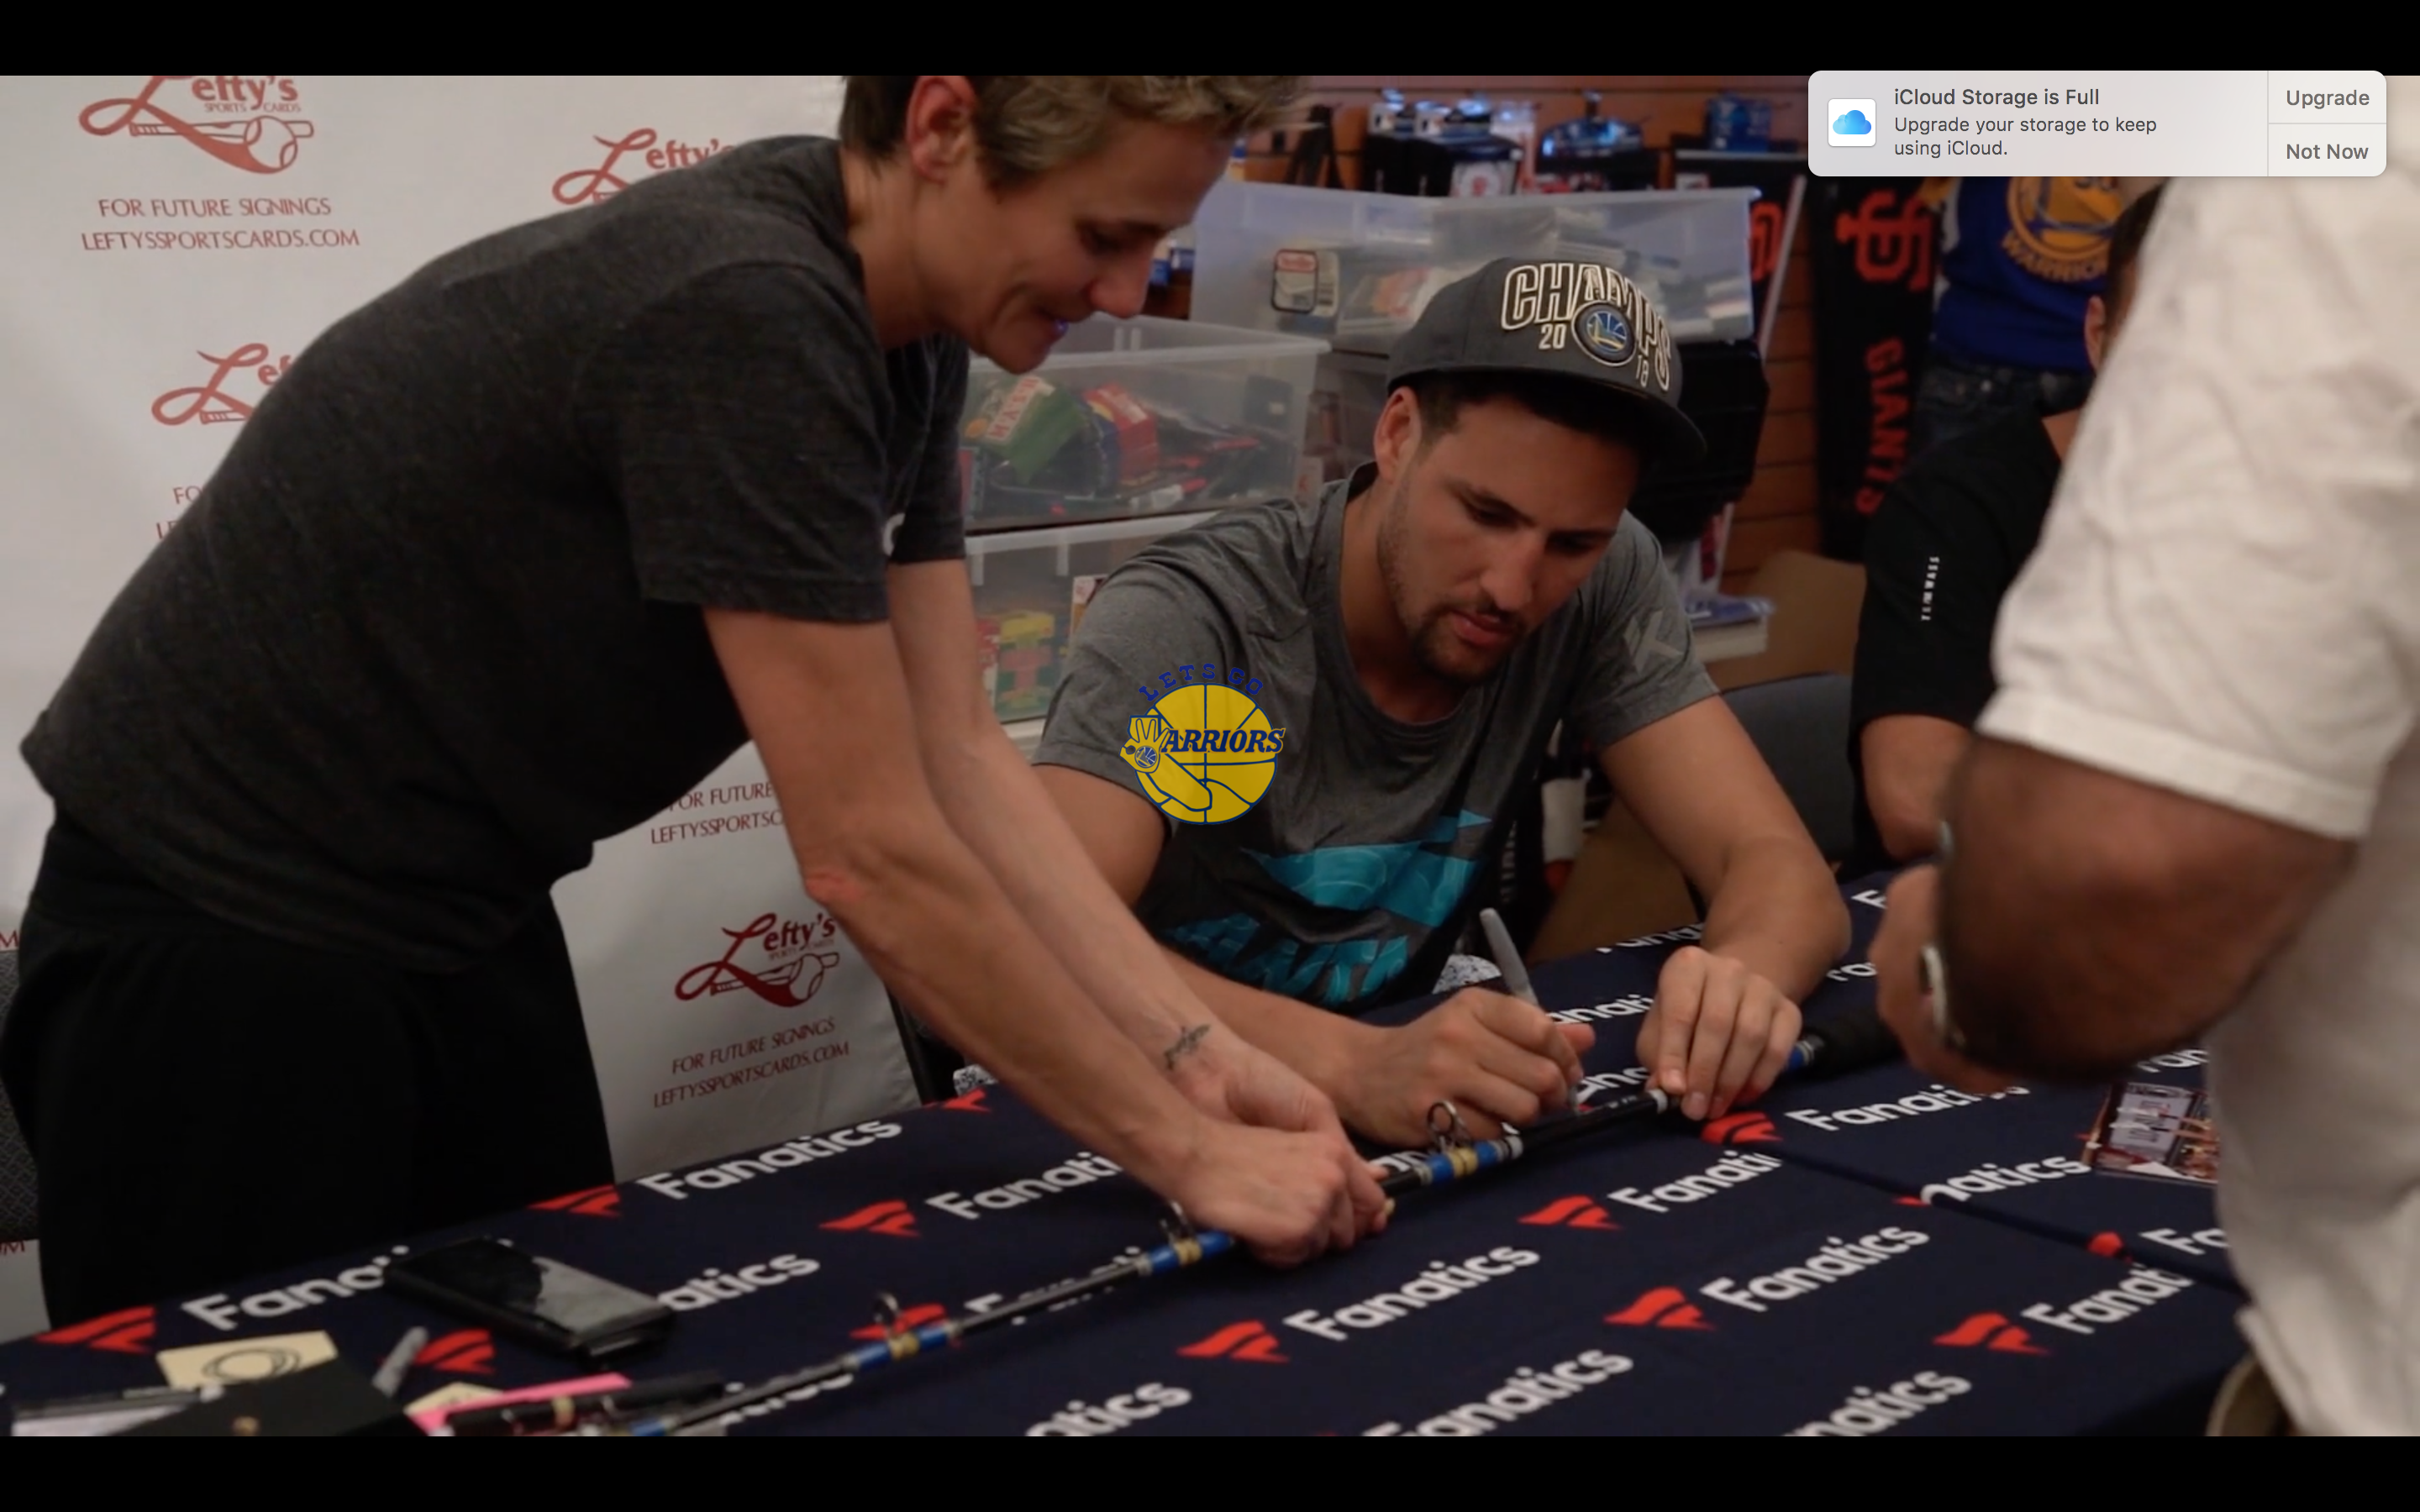 PHOTO GALLERY: Klay Thompson autographs a fishing pole at Lefty's Sports Autograph Signing